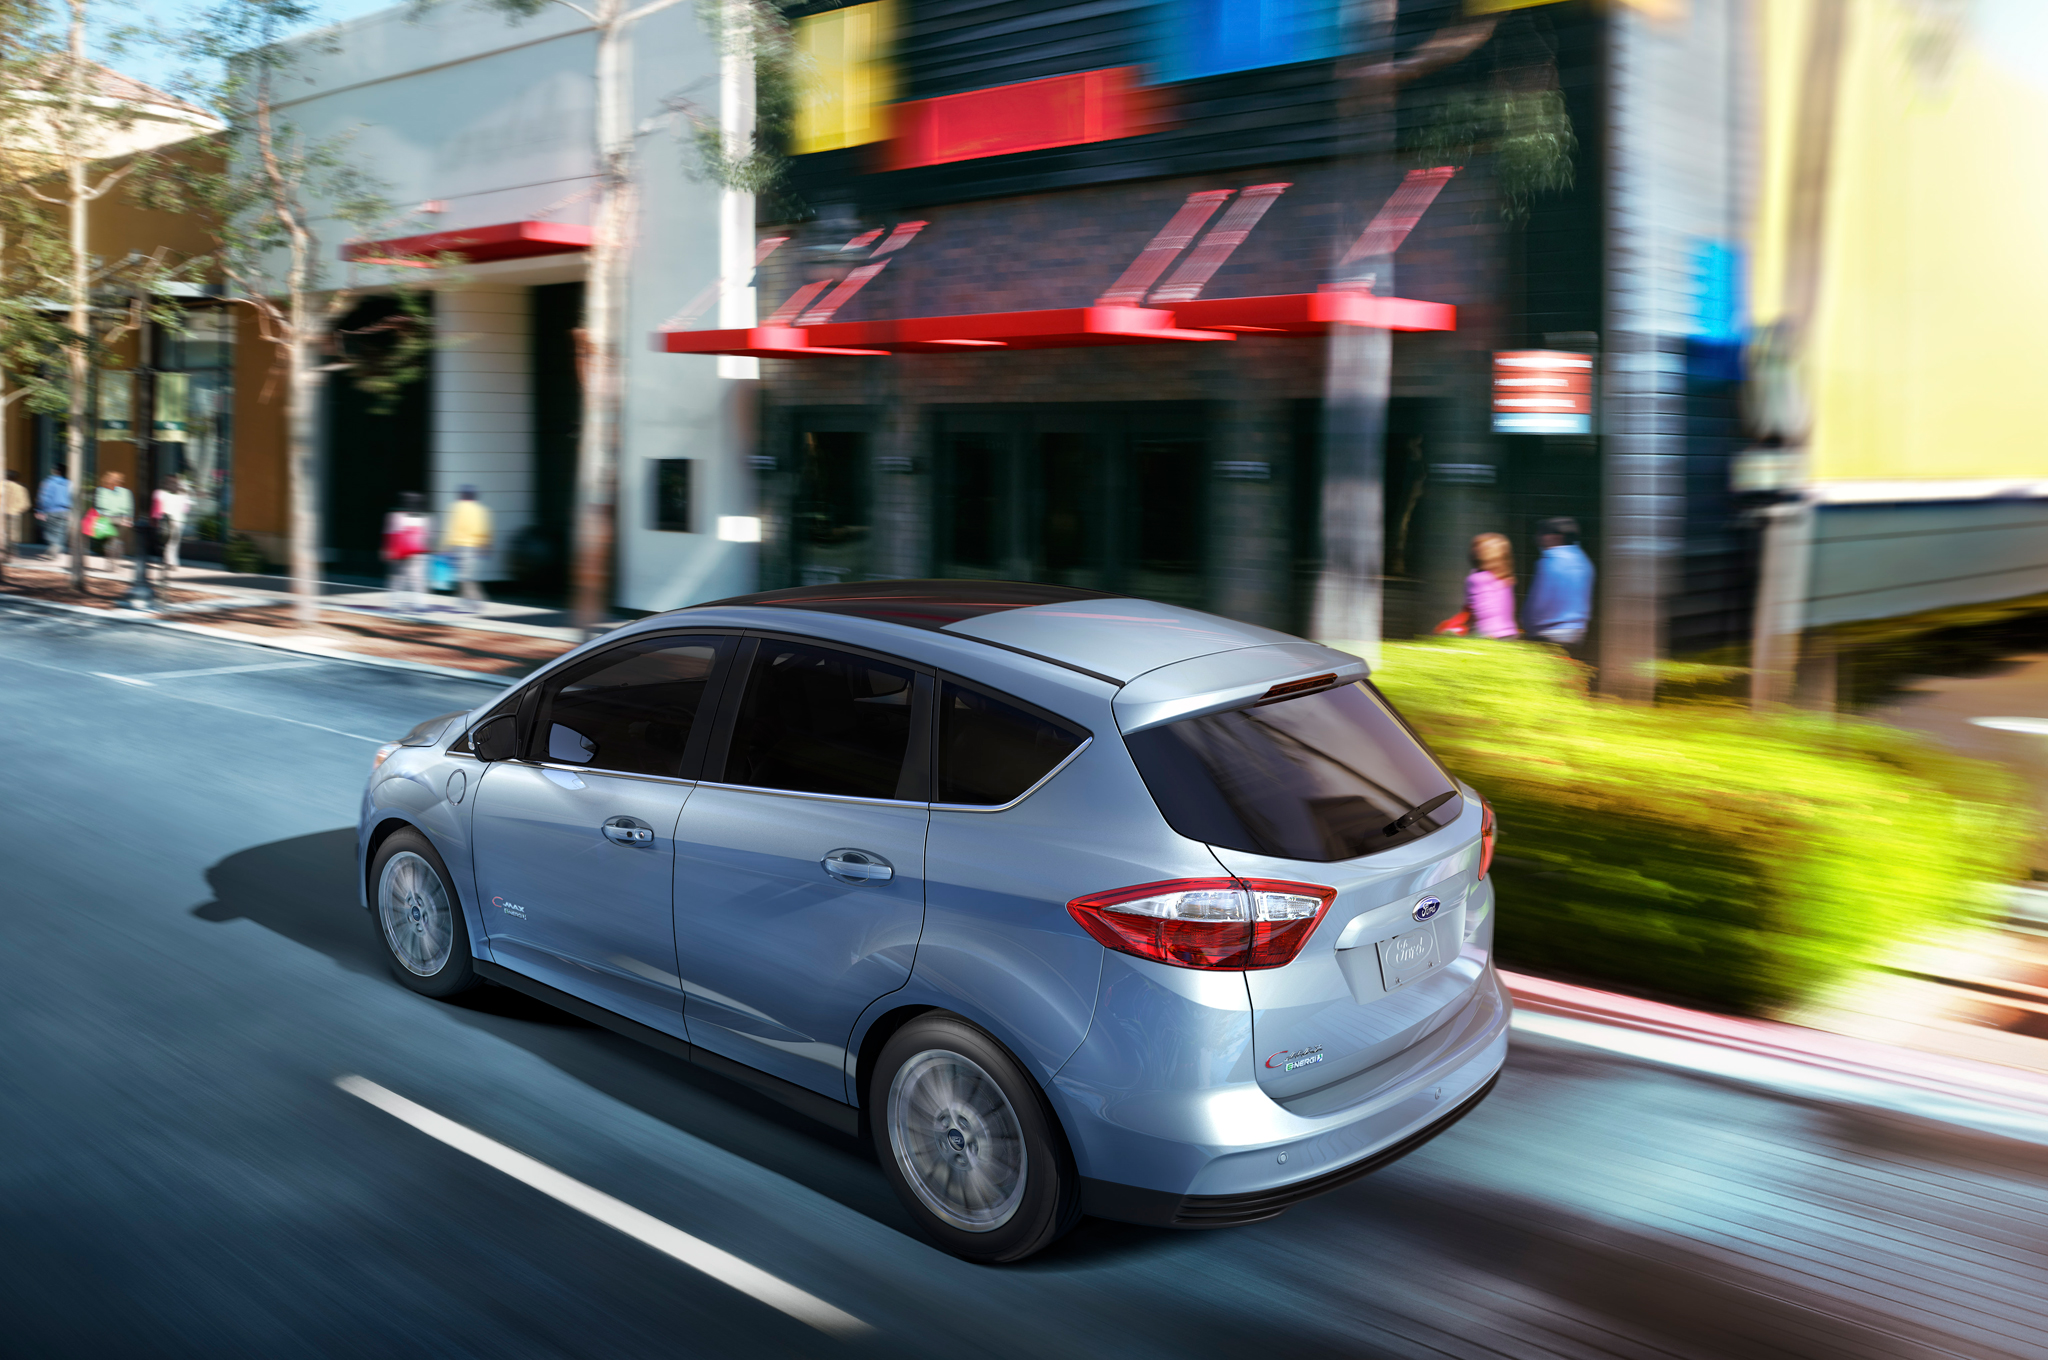 2018 Ford Focus CMax photo - 1